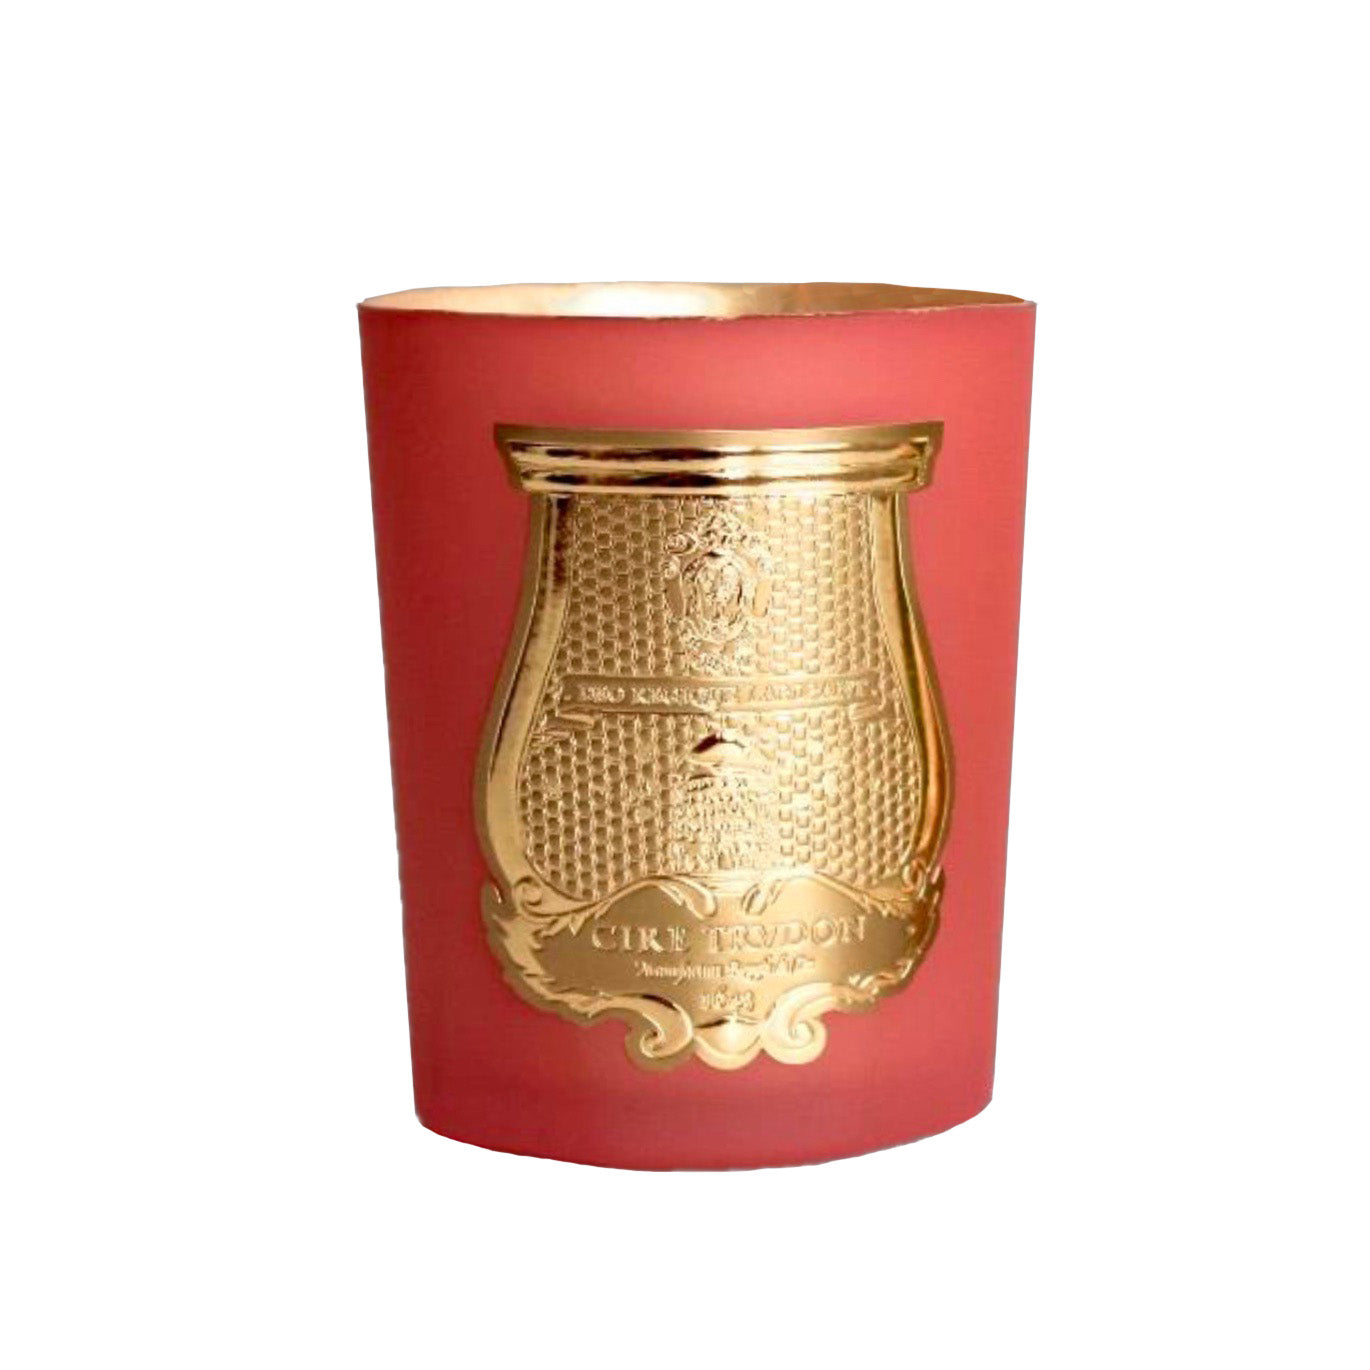 Cire Trudon Candle - Philae